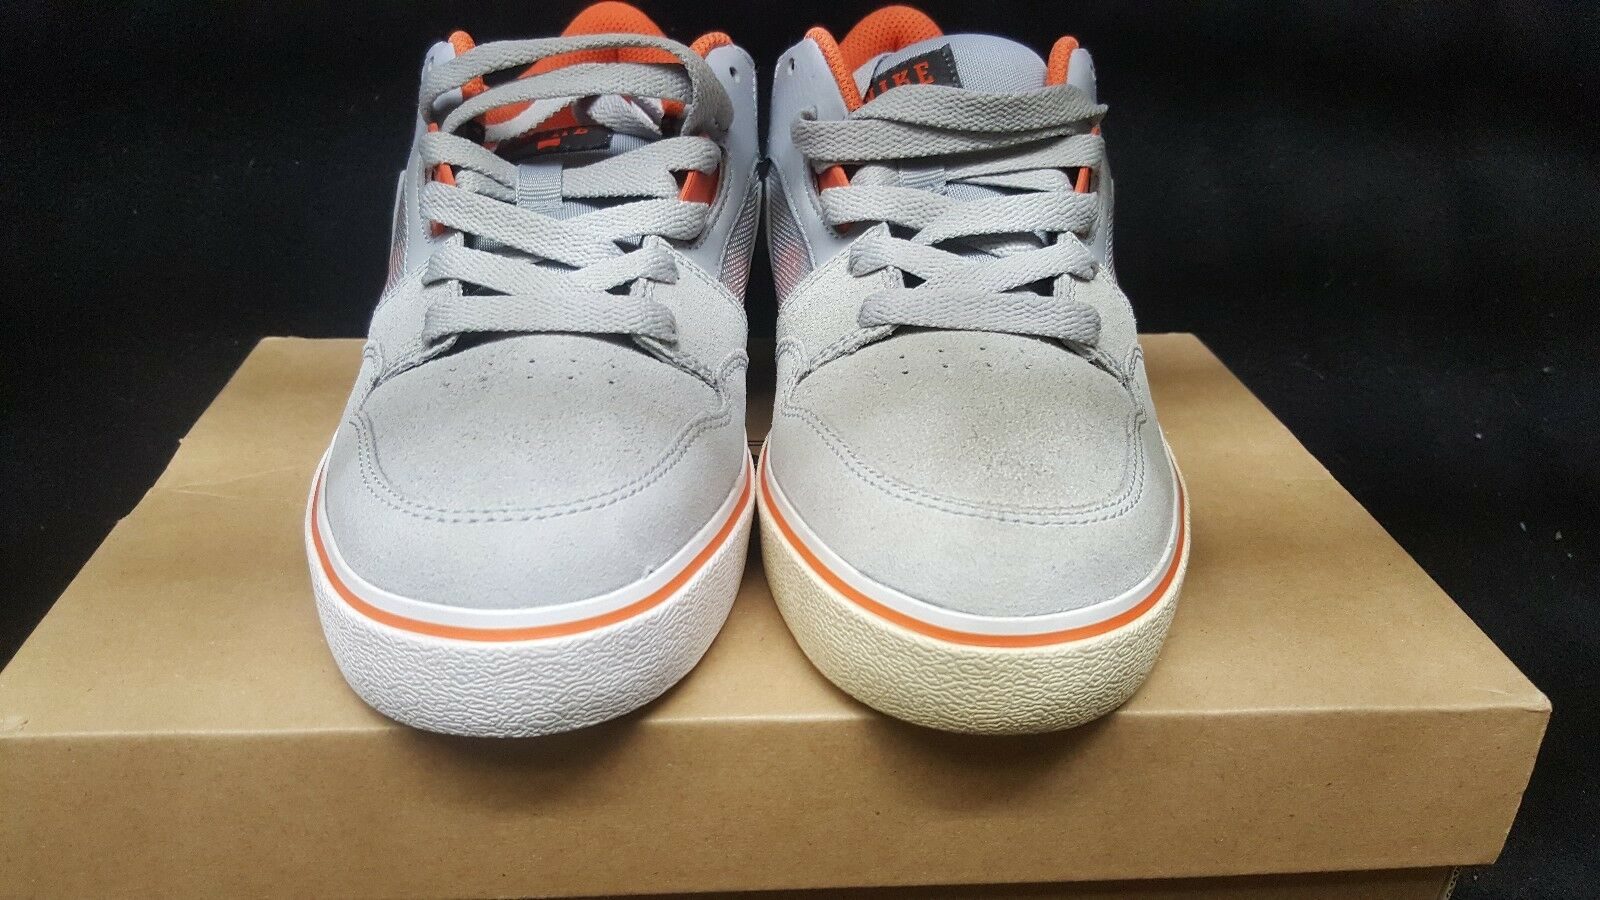 NIKE RUCKUS 2 LR MEN'S SIZE 7 The most popular shoes for men and women